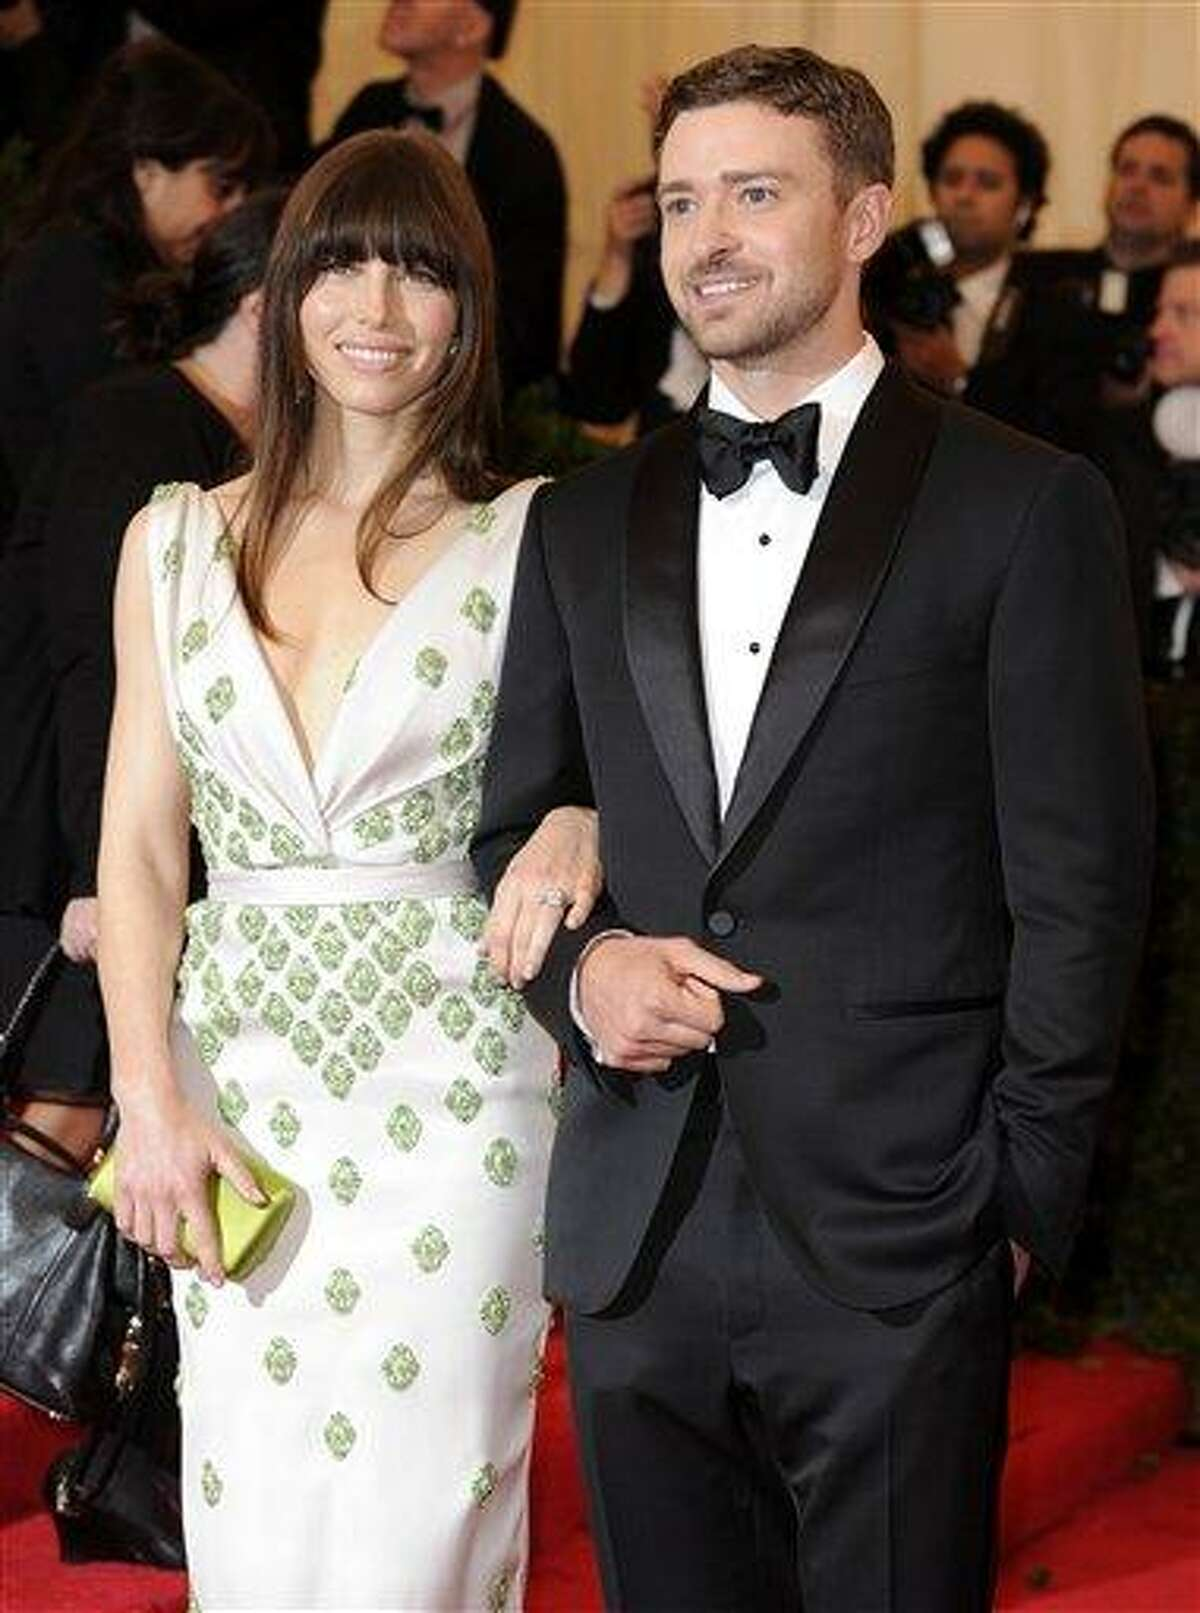 In this May 7, 2012, file photo, Jessica Biel and Justin Timberlake arrive at the Metropolitan Museum of Art Costume Institute gala benefit, celebrating Elsa Schiaparelli and Miuccia Prada in New York. Biel says that before Timberlake proposed, she didn't expect to ever get married. The 30-year-old actress told The Associated Press on Friday that she feels